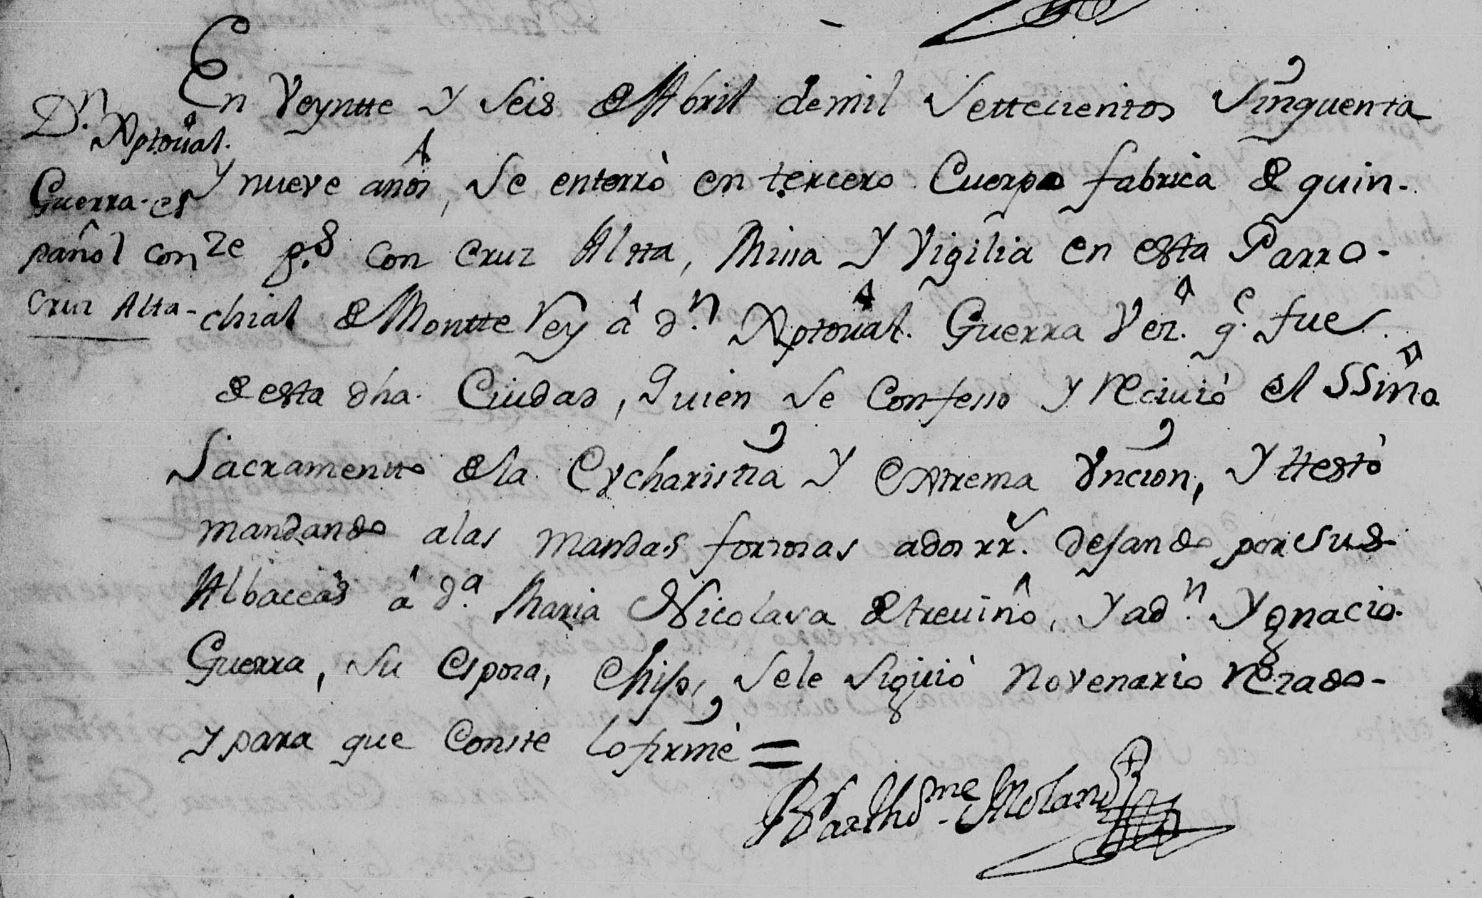 Cristobal Guerra Cañamar Death Record FamilySearch, Monterrey, N.L. Catherdral 1759 Pg. 72